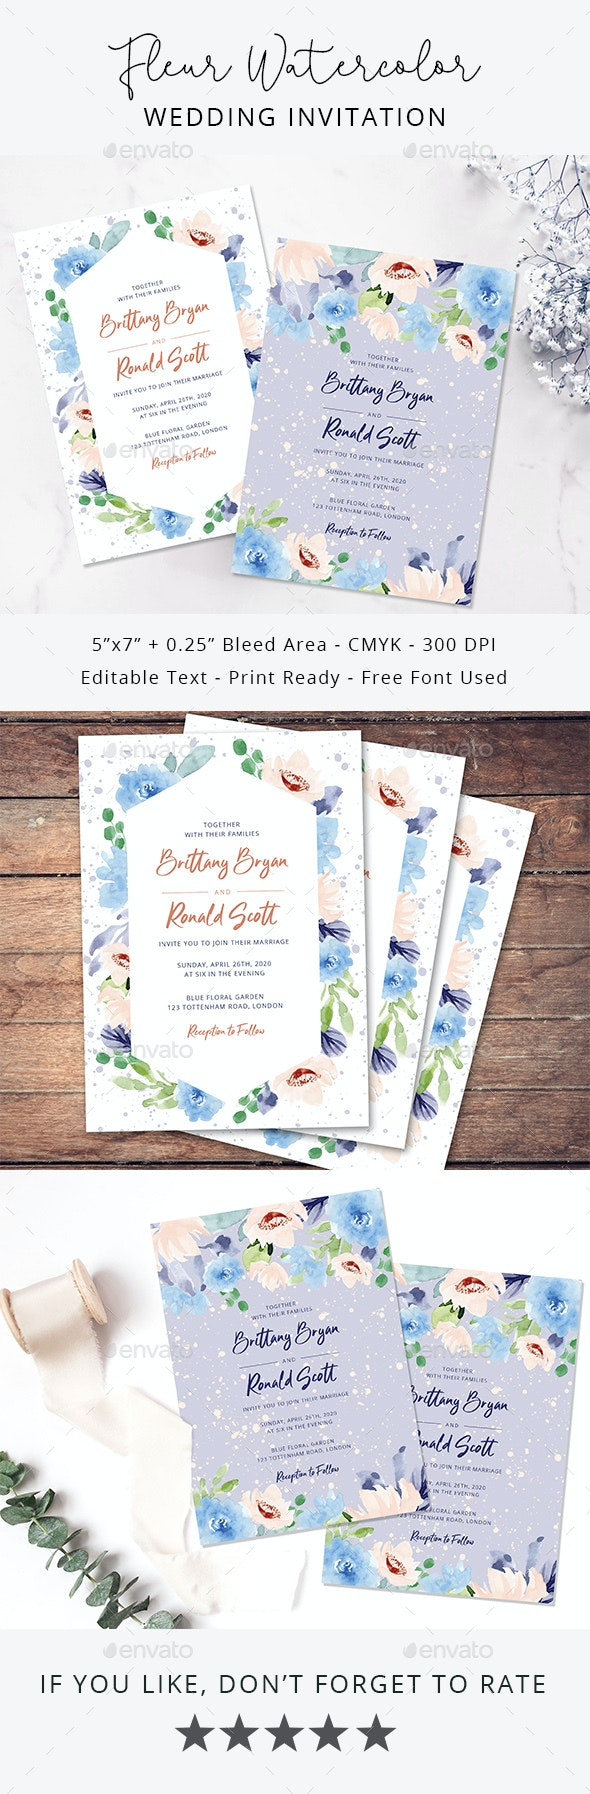 Fleur Watercolor Wedding Invitation - Weddings Cards & Invites